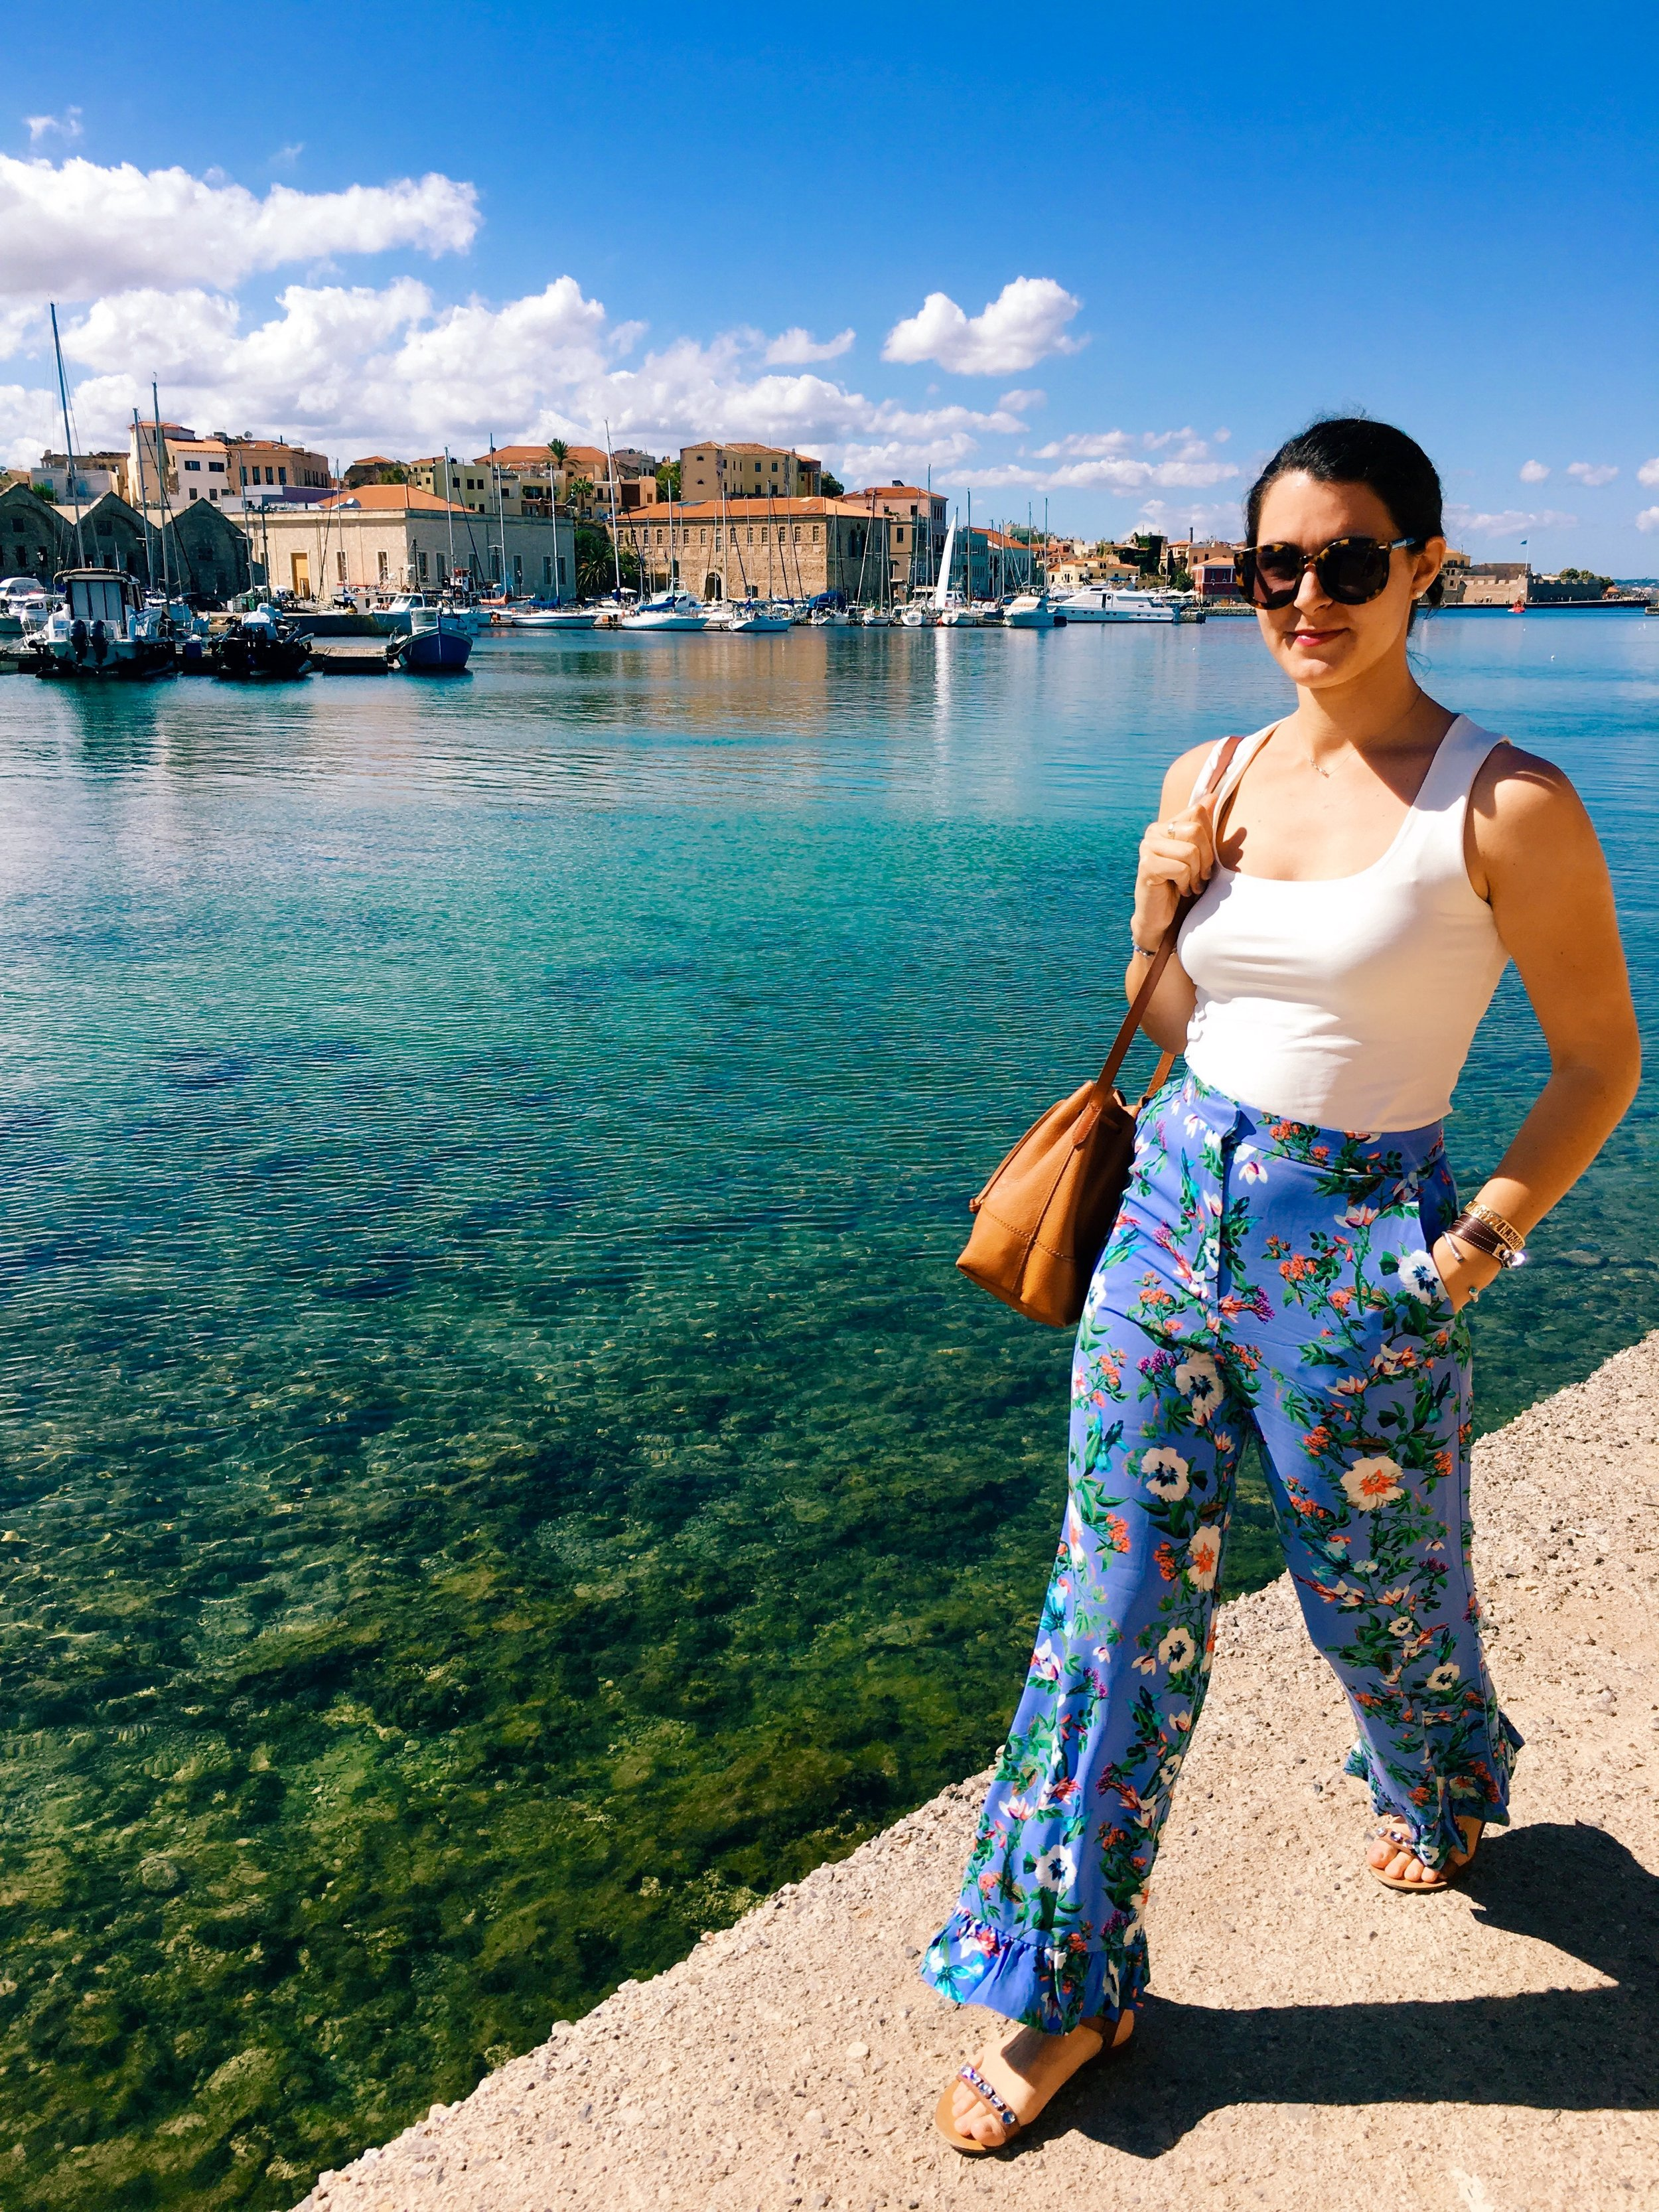 Chania, Crete 10.09.17   The fun pants are out! You don't want to miss this high waisted flattering look (on sale!).  Shop here.